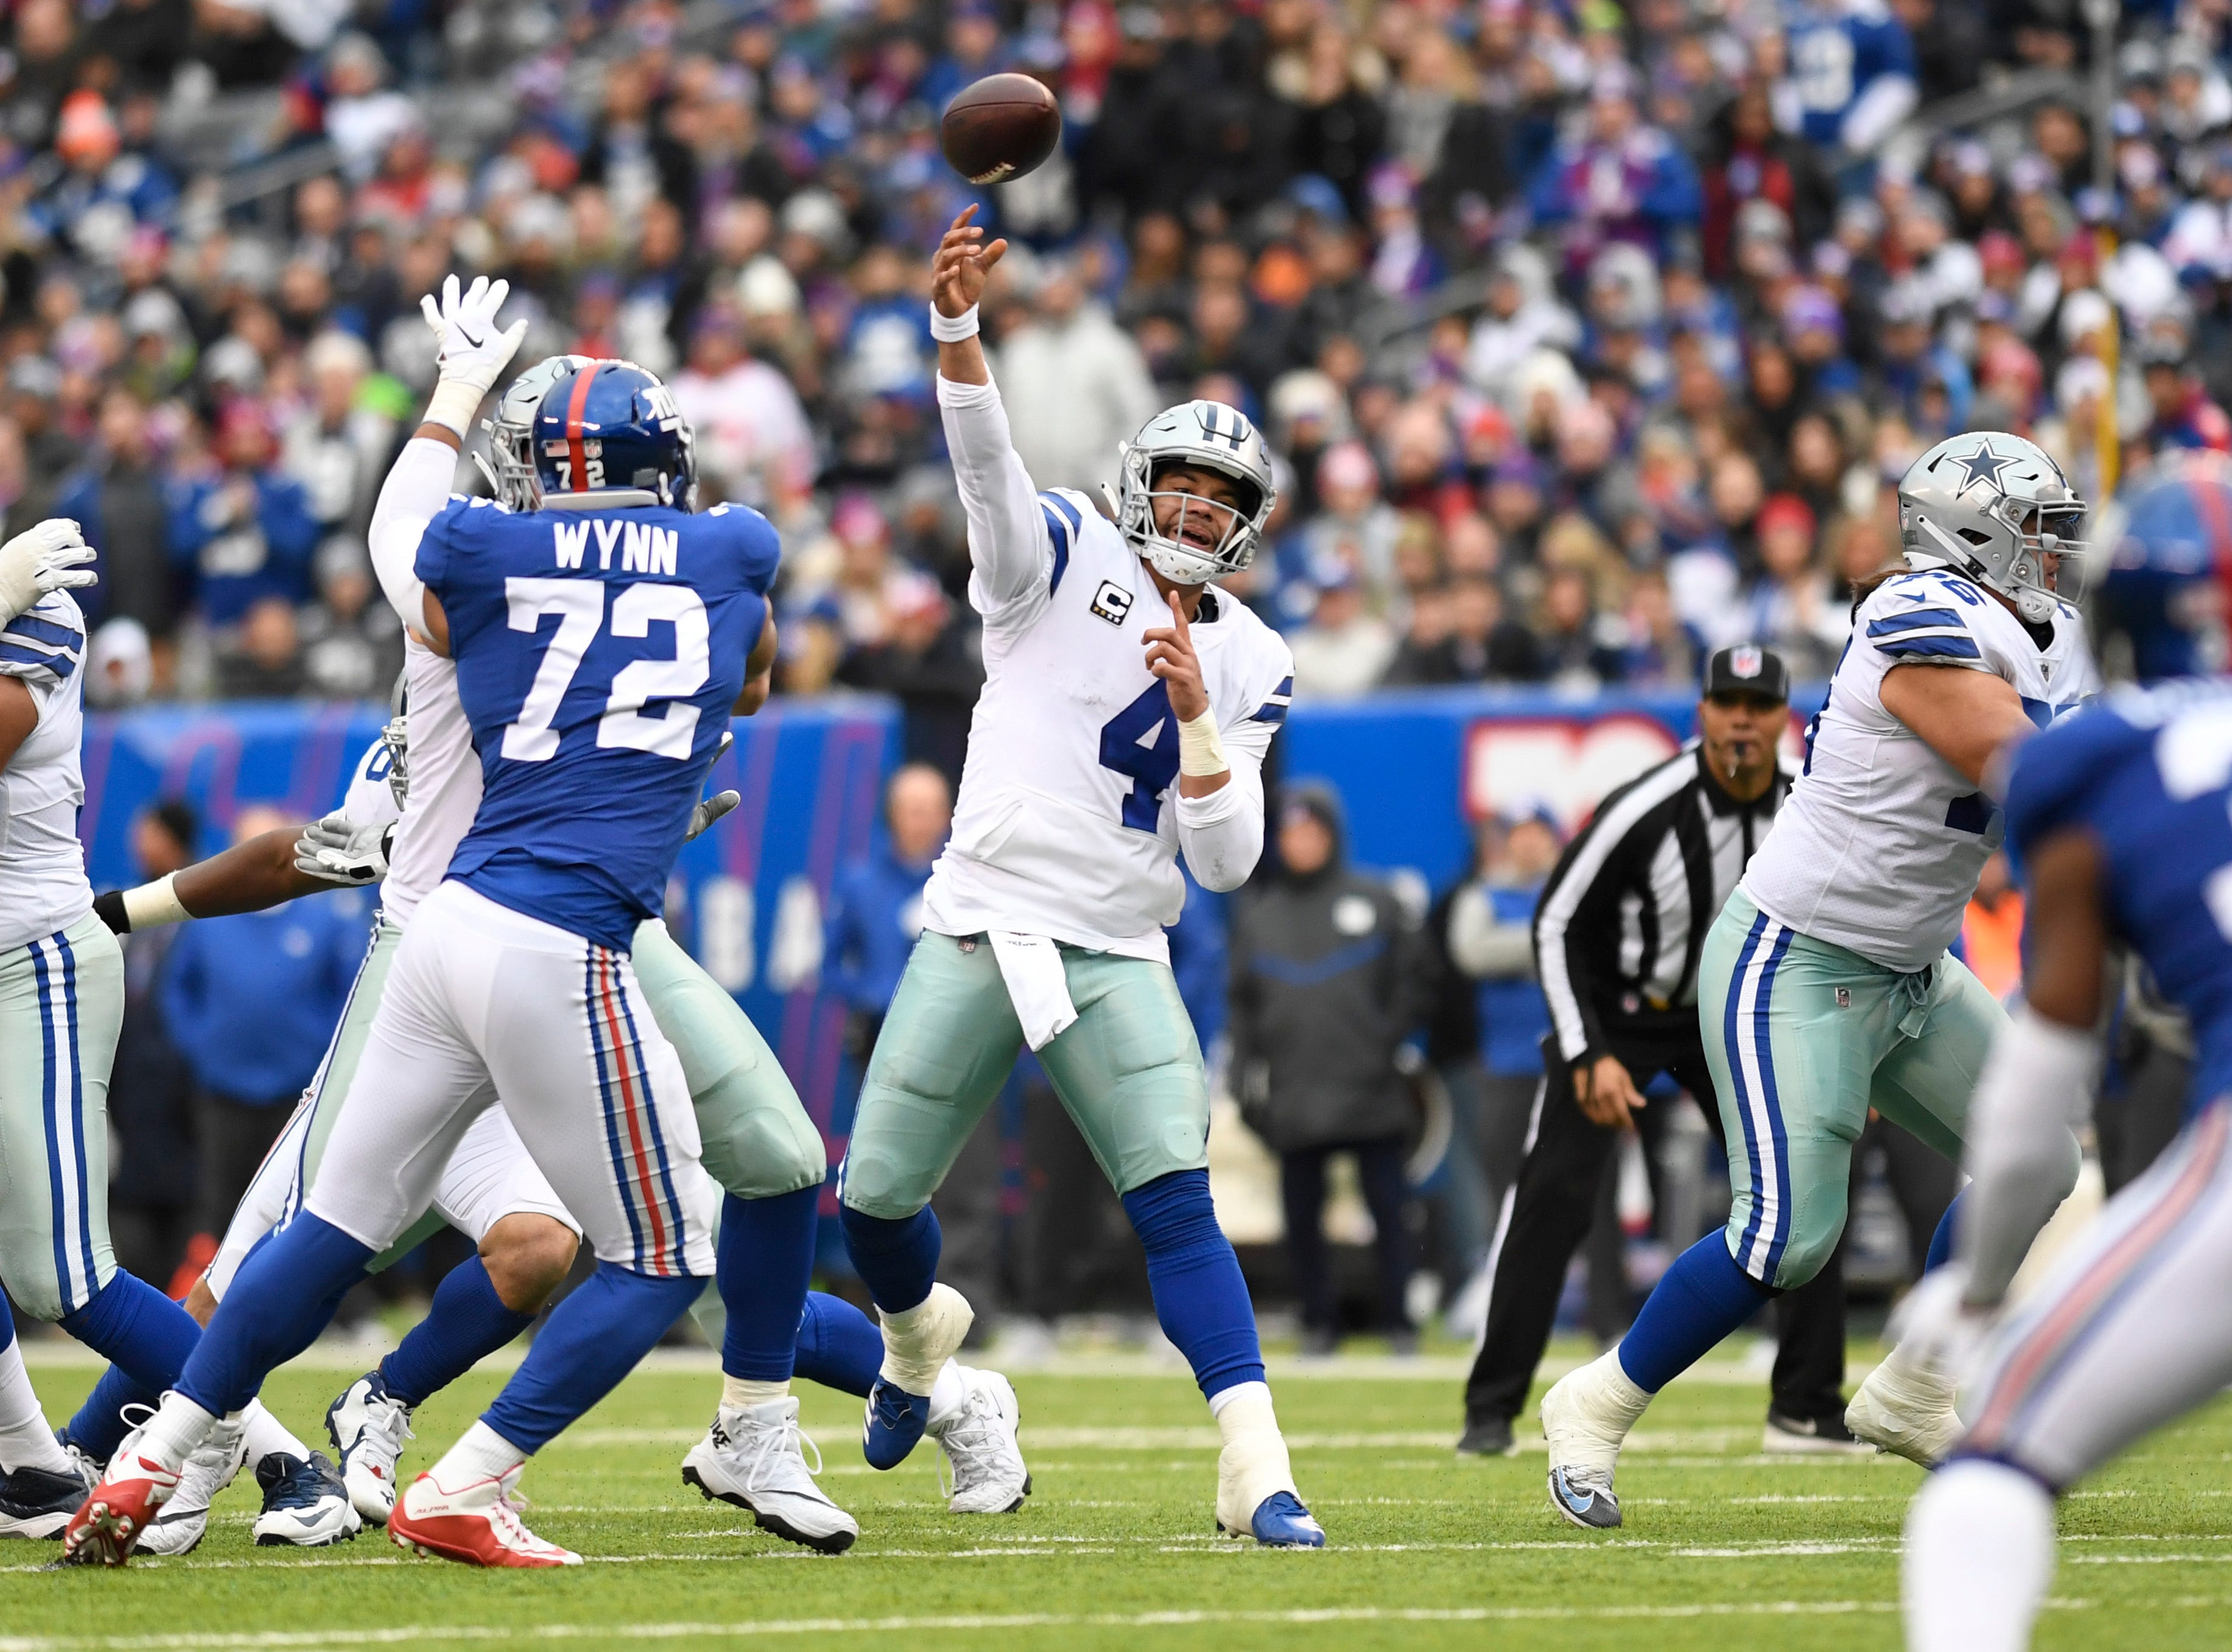 Dallas Cowboys quarterback Dak Prescott (4) throws a touchdown pass in the first half. The New York Giants face the Dallas Cowboys in the last regular season game on Sunday, Dec. 30, 2018, in East Rutherford.